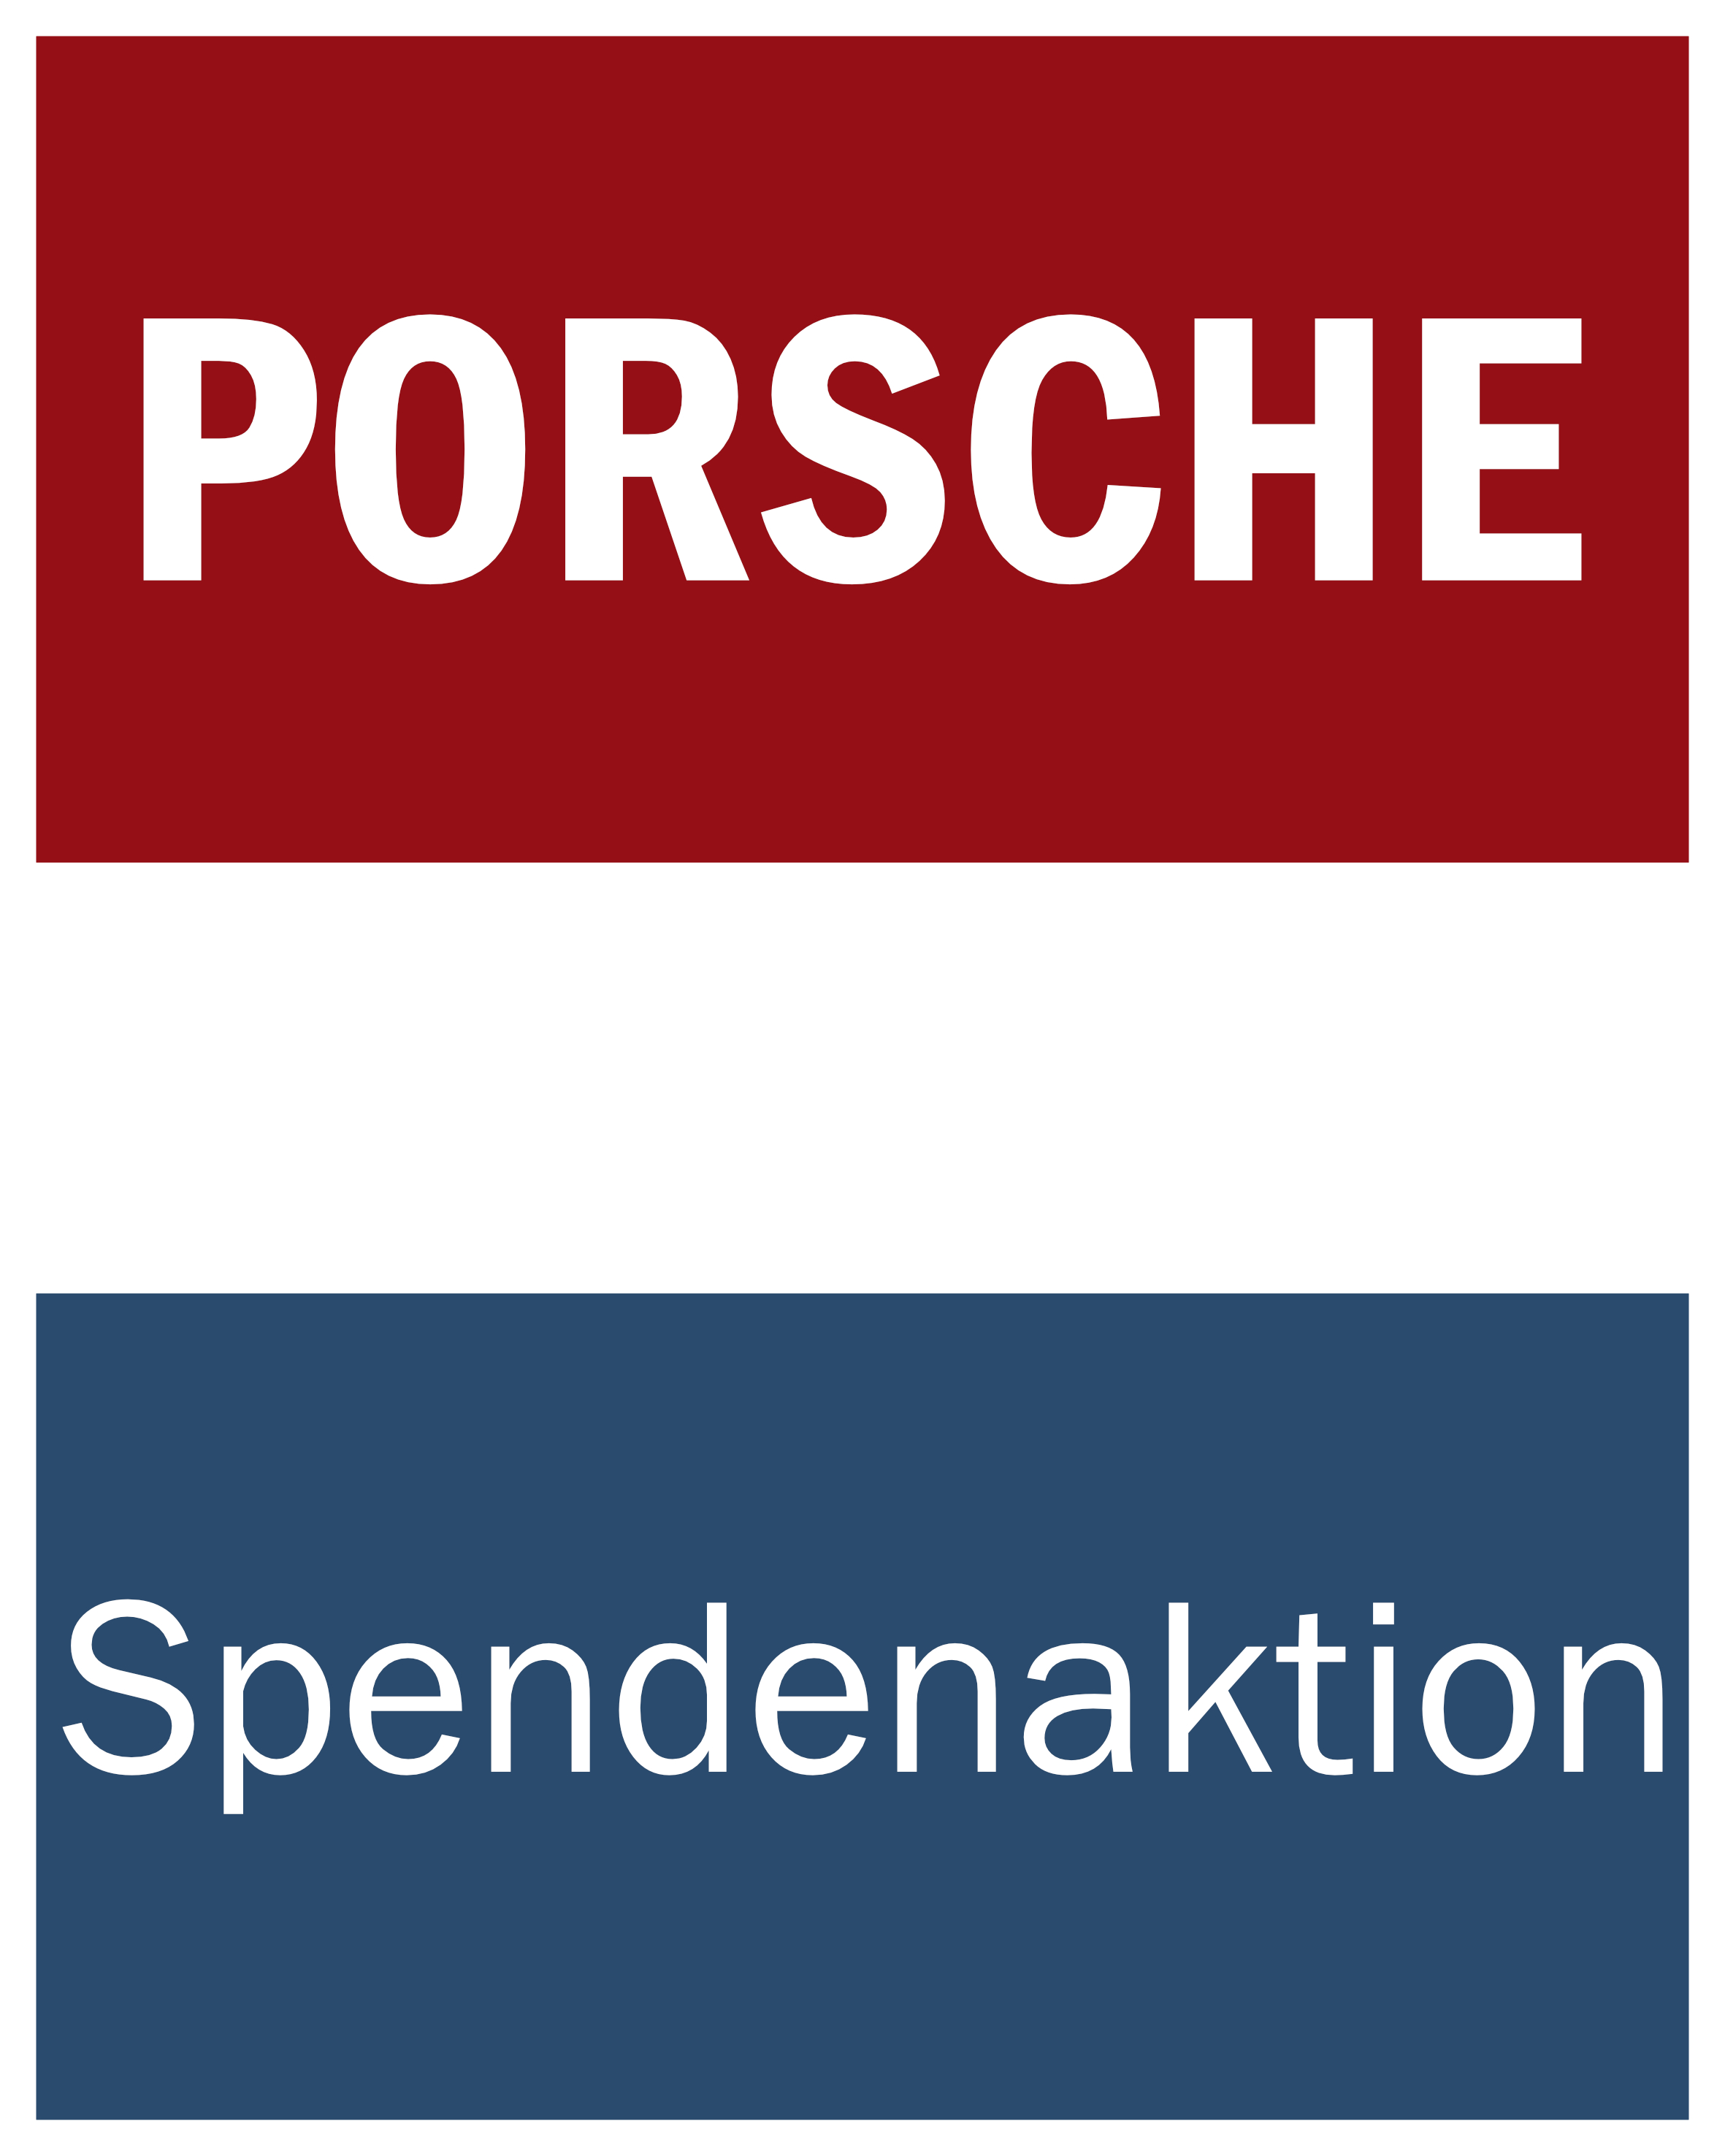 Porsche Spendenaktion